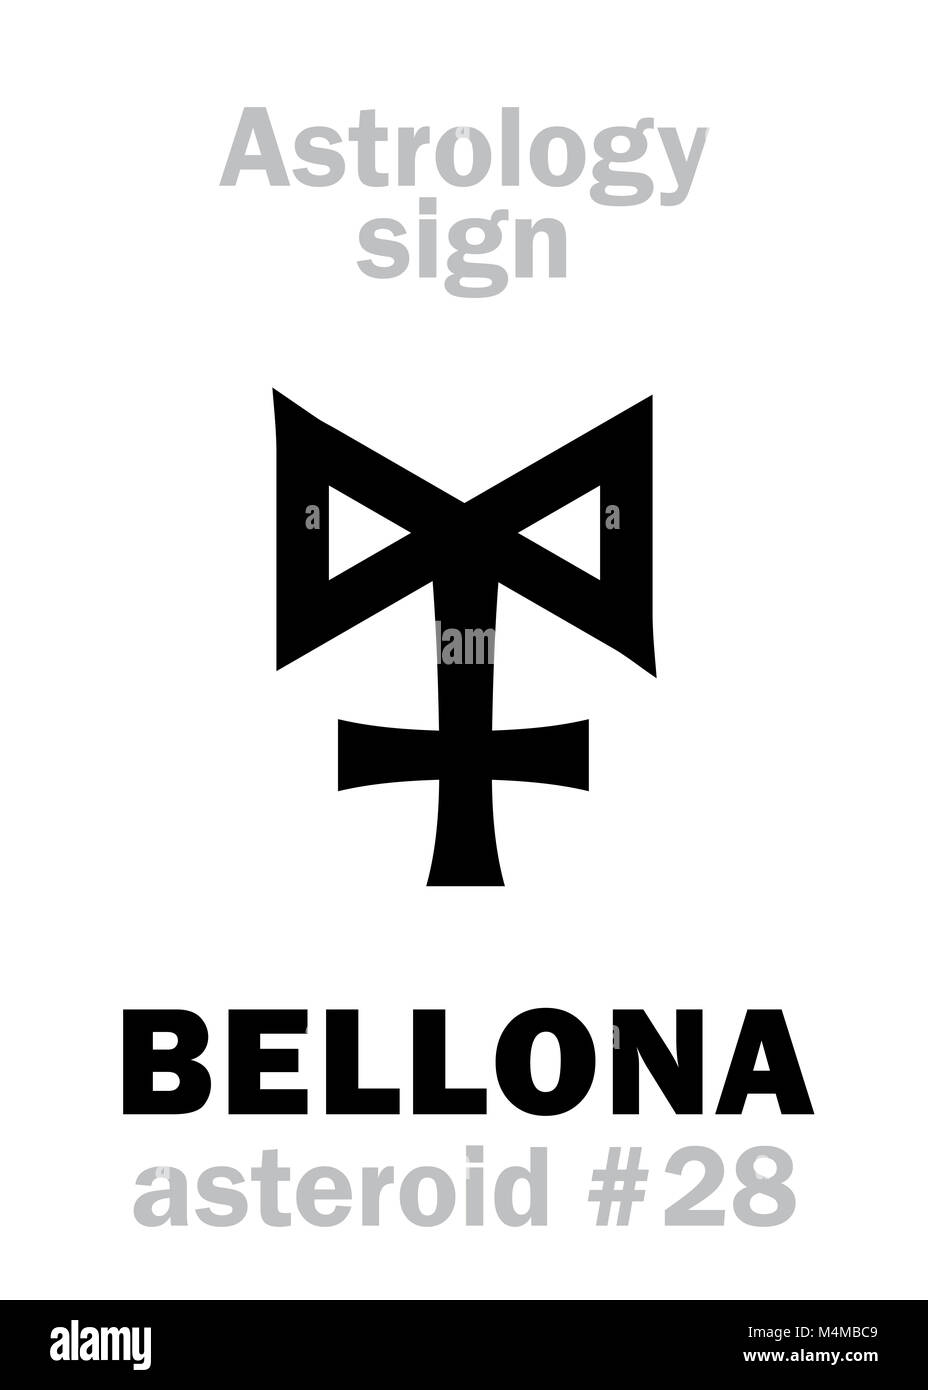 Astrology: asteroid BELLONA - Stock Image